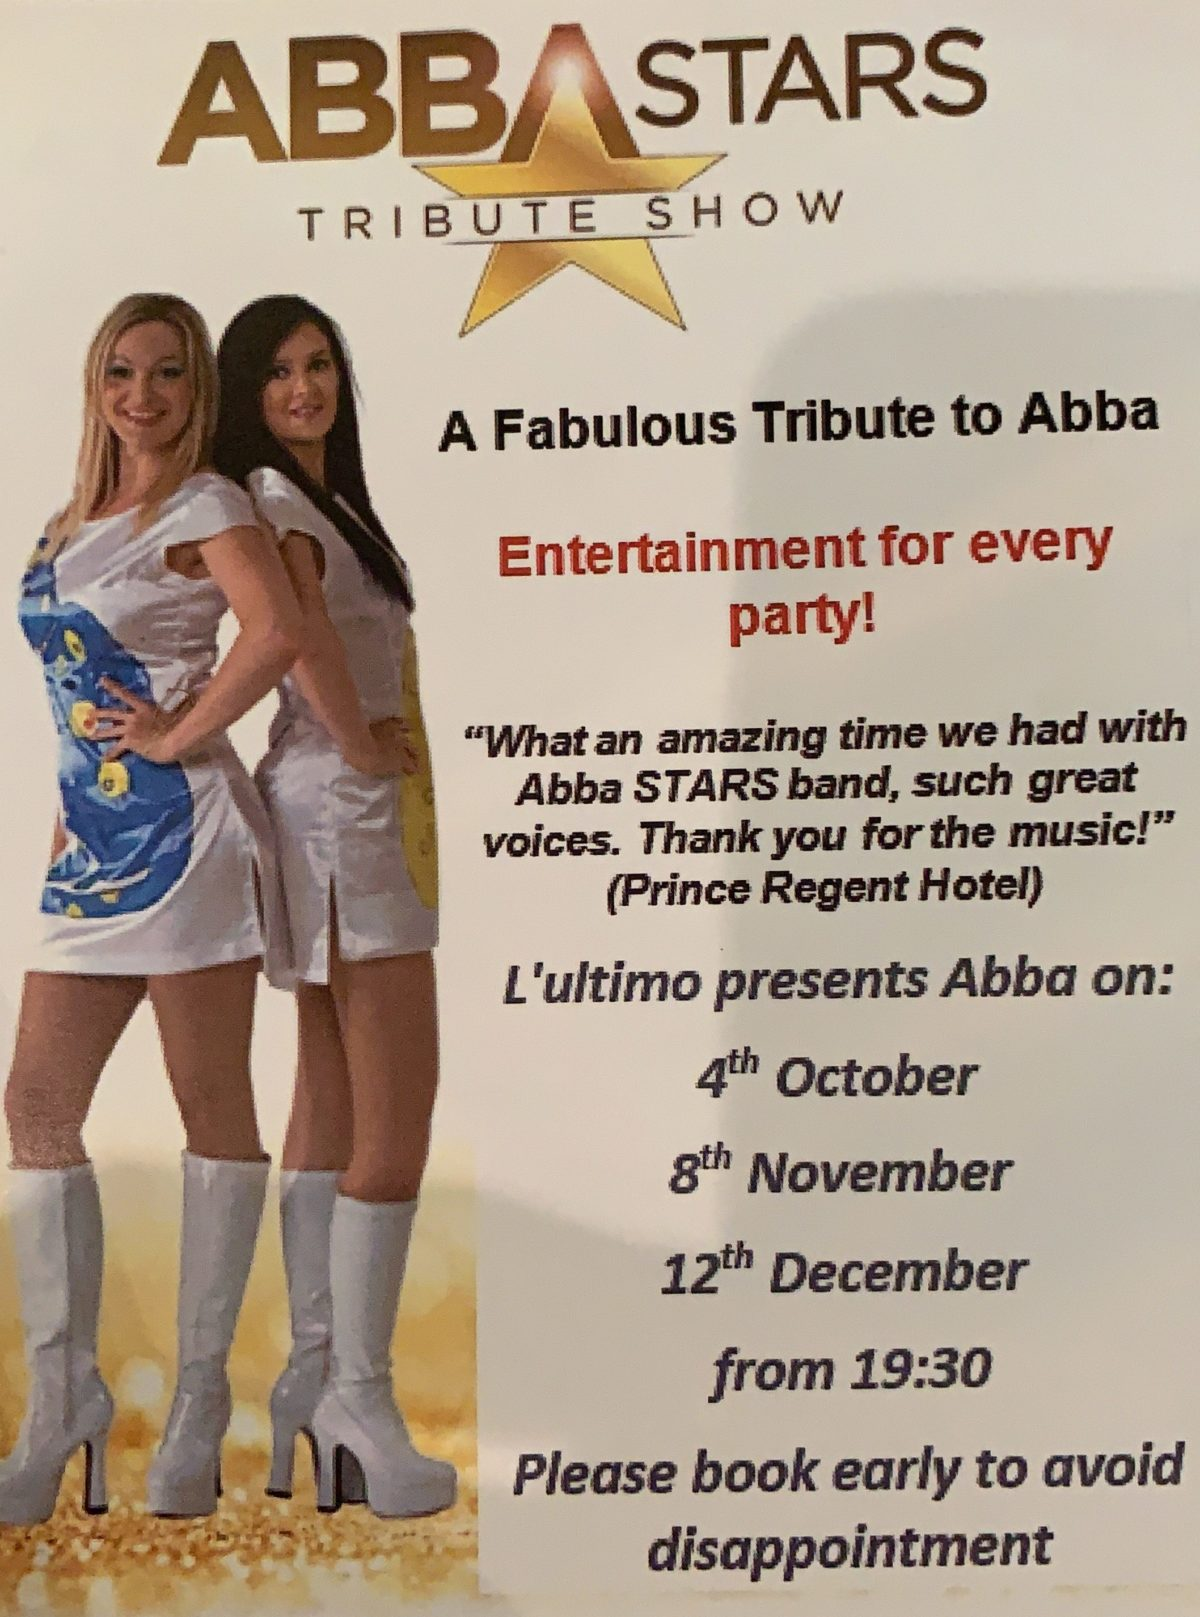 Thu 12th Dec – A fabulous tribute to Abba